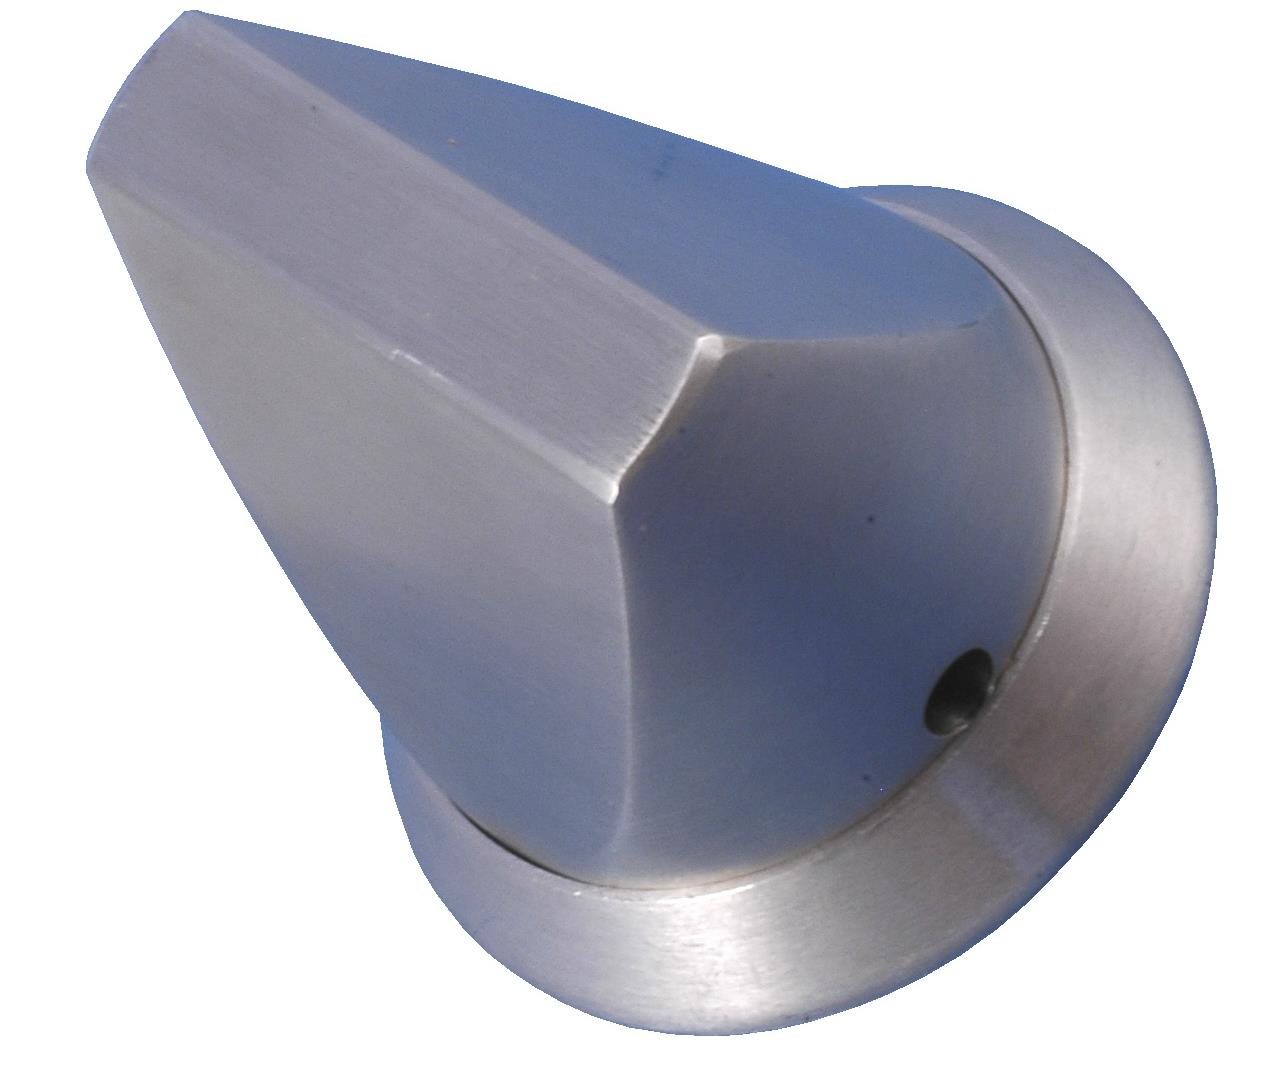 ALKDC - Anti-Ligature Double Chamfer Knob